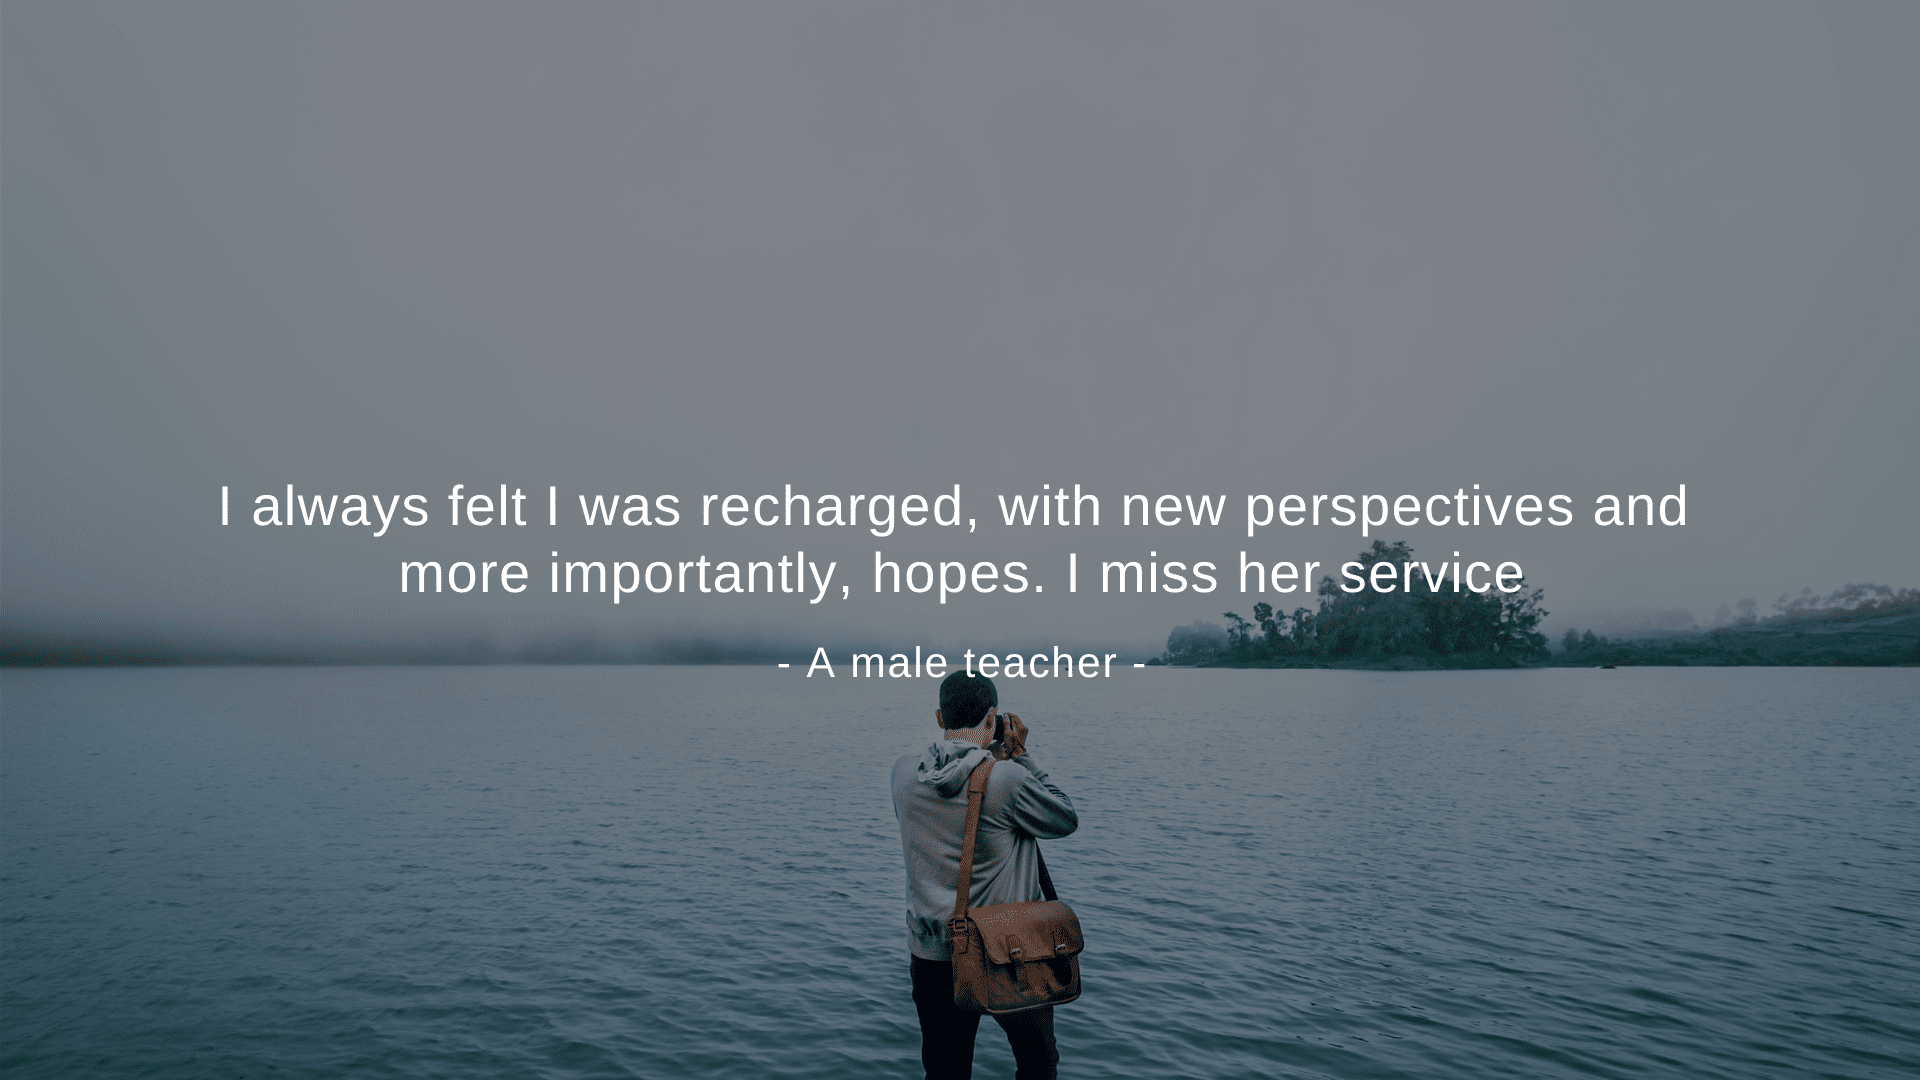 """ I always felt I was recharged, with new perspectives and more importantly, hopes. I miss her service."" A male teacher"